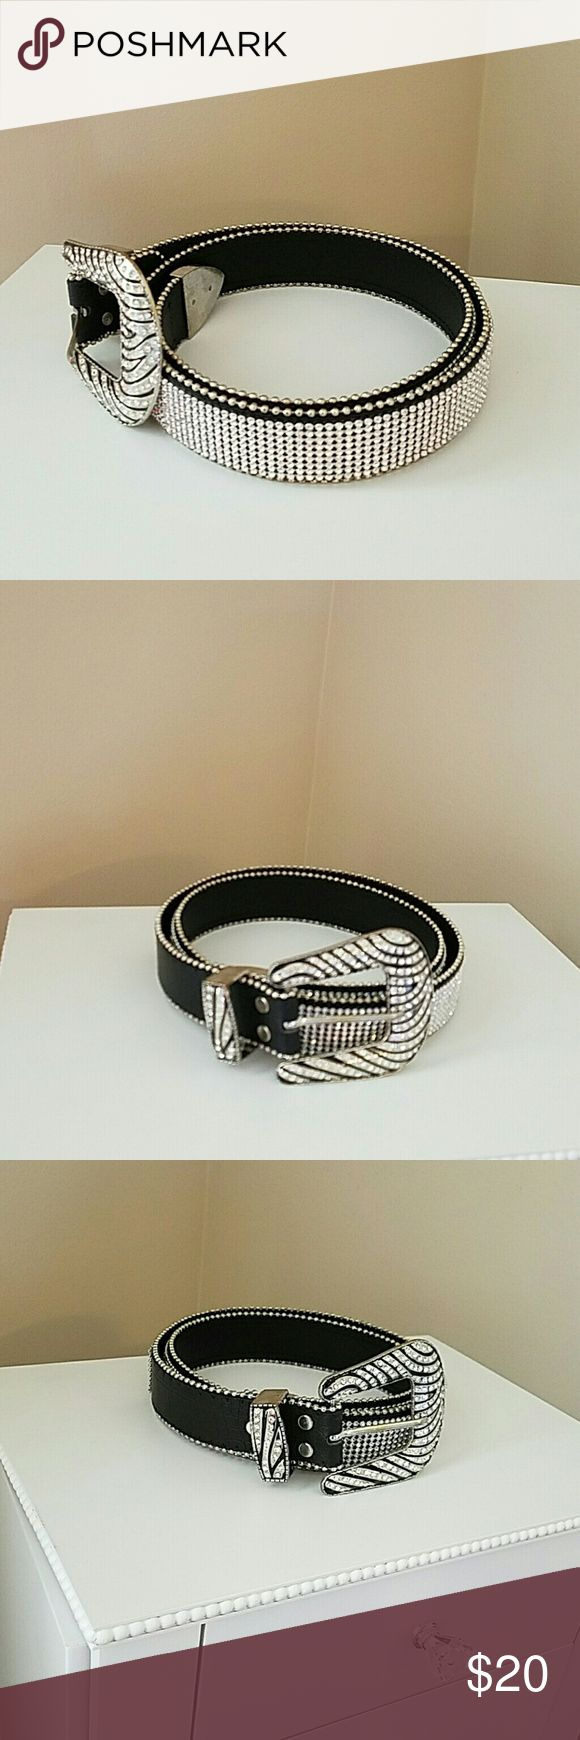 "Silver /Black rhinestone  belt gorgeous NWOB  Xl Gorgeous eye catching  black/silver rhinestones belt NWOT  size Xl belt measures 44"" length without buckle Accessories Belts"